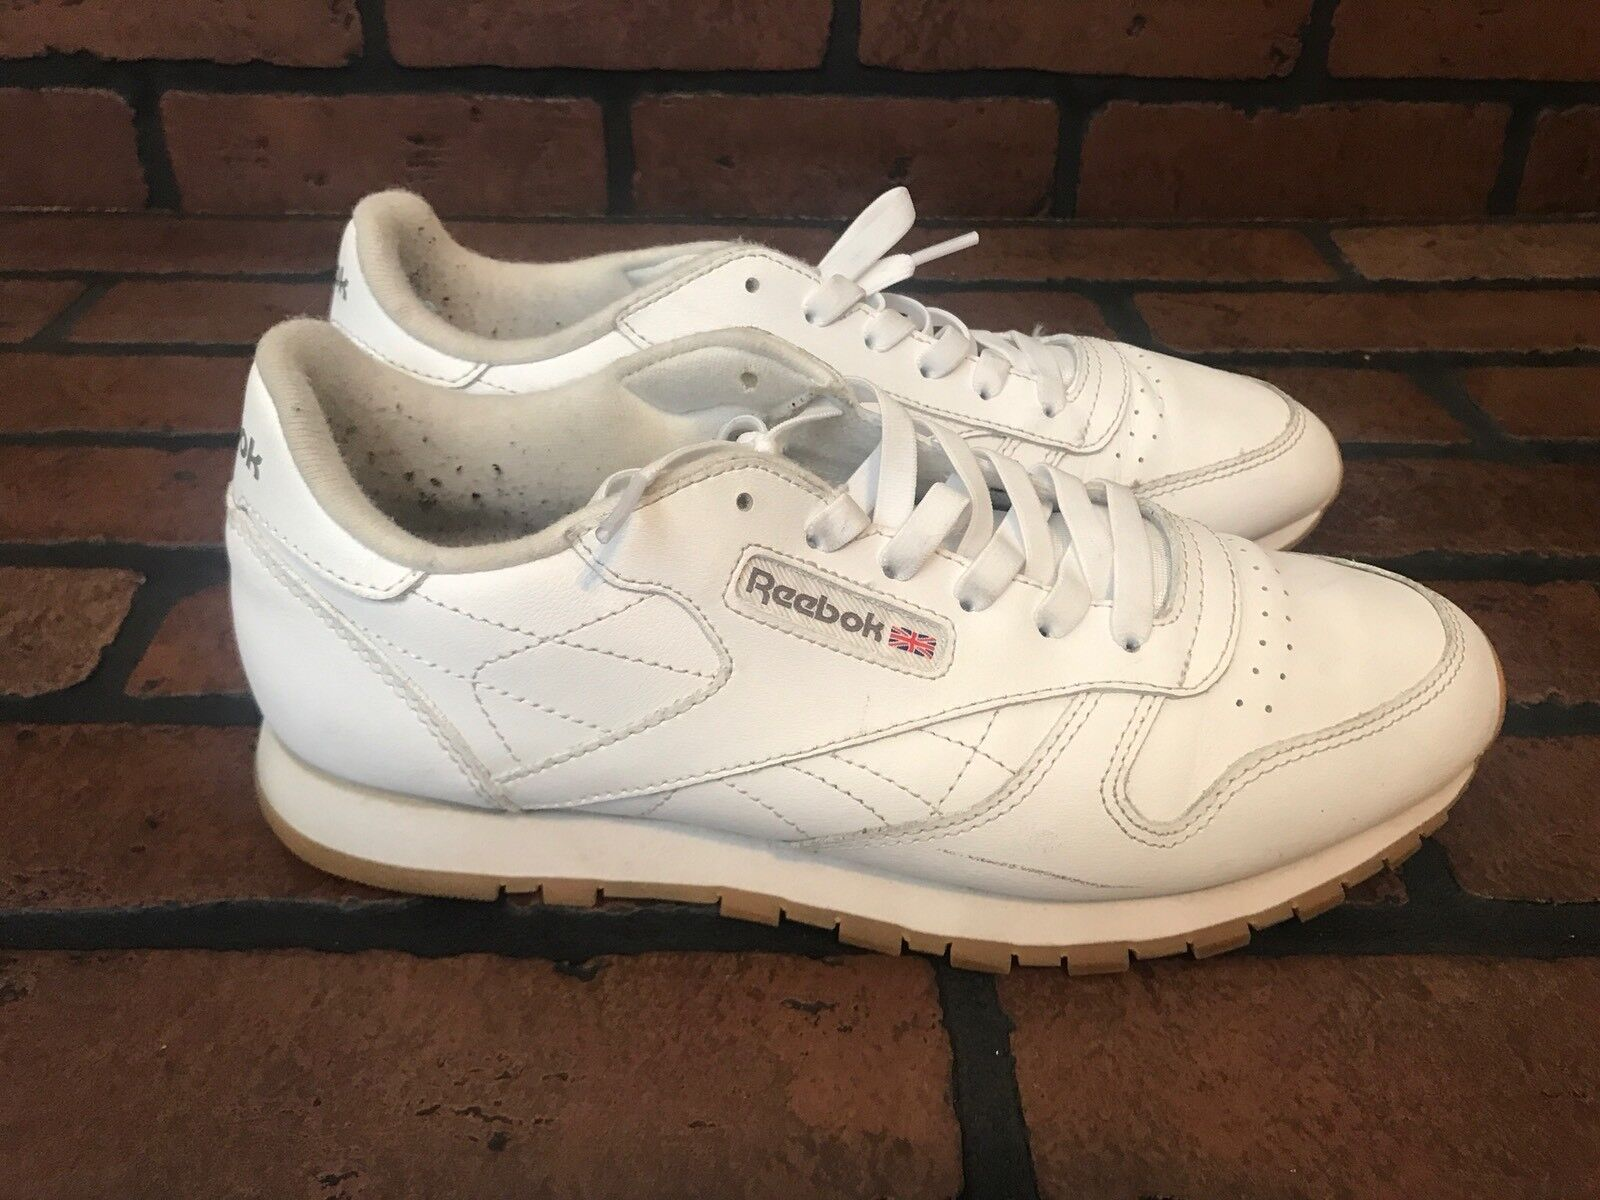 Reebok Retro Sneakers White Leather Woth Gum Soles Size 7